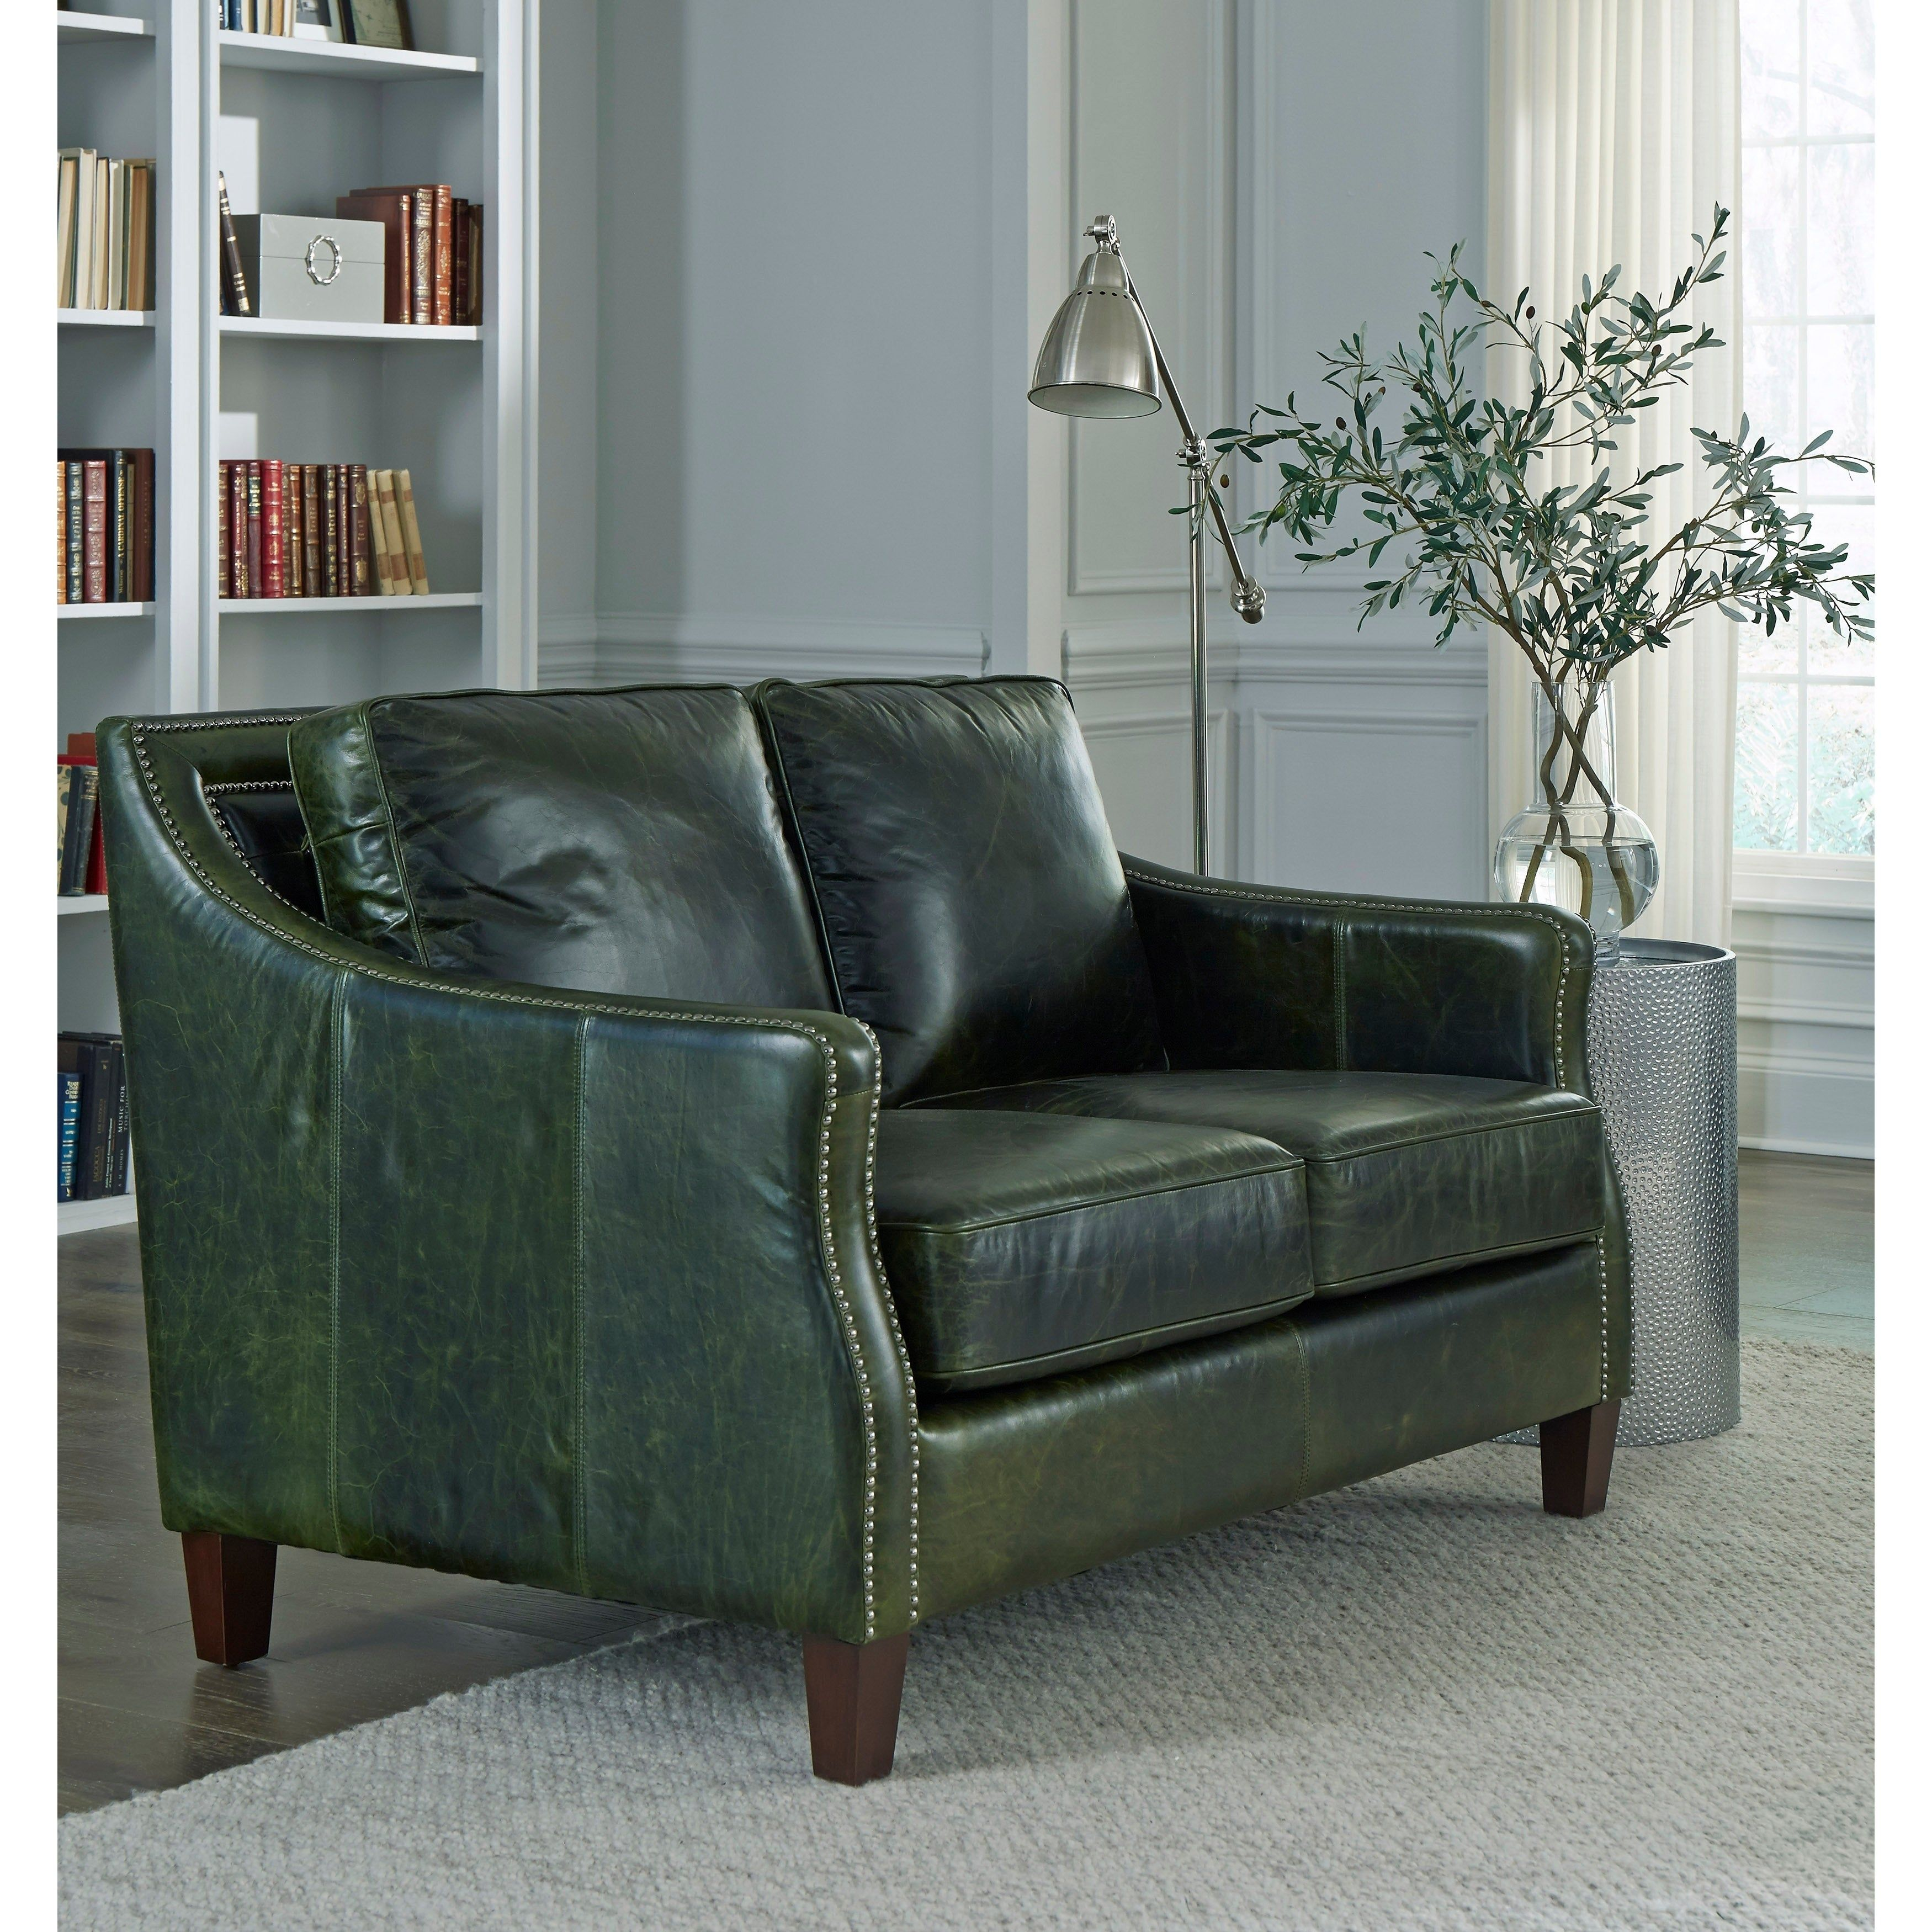 Essex Distressed Green Top Grain Leather Loveseat in 2020